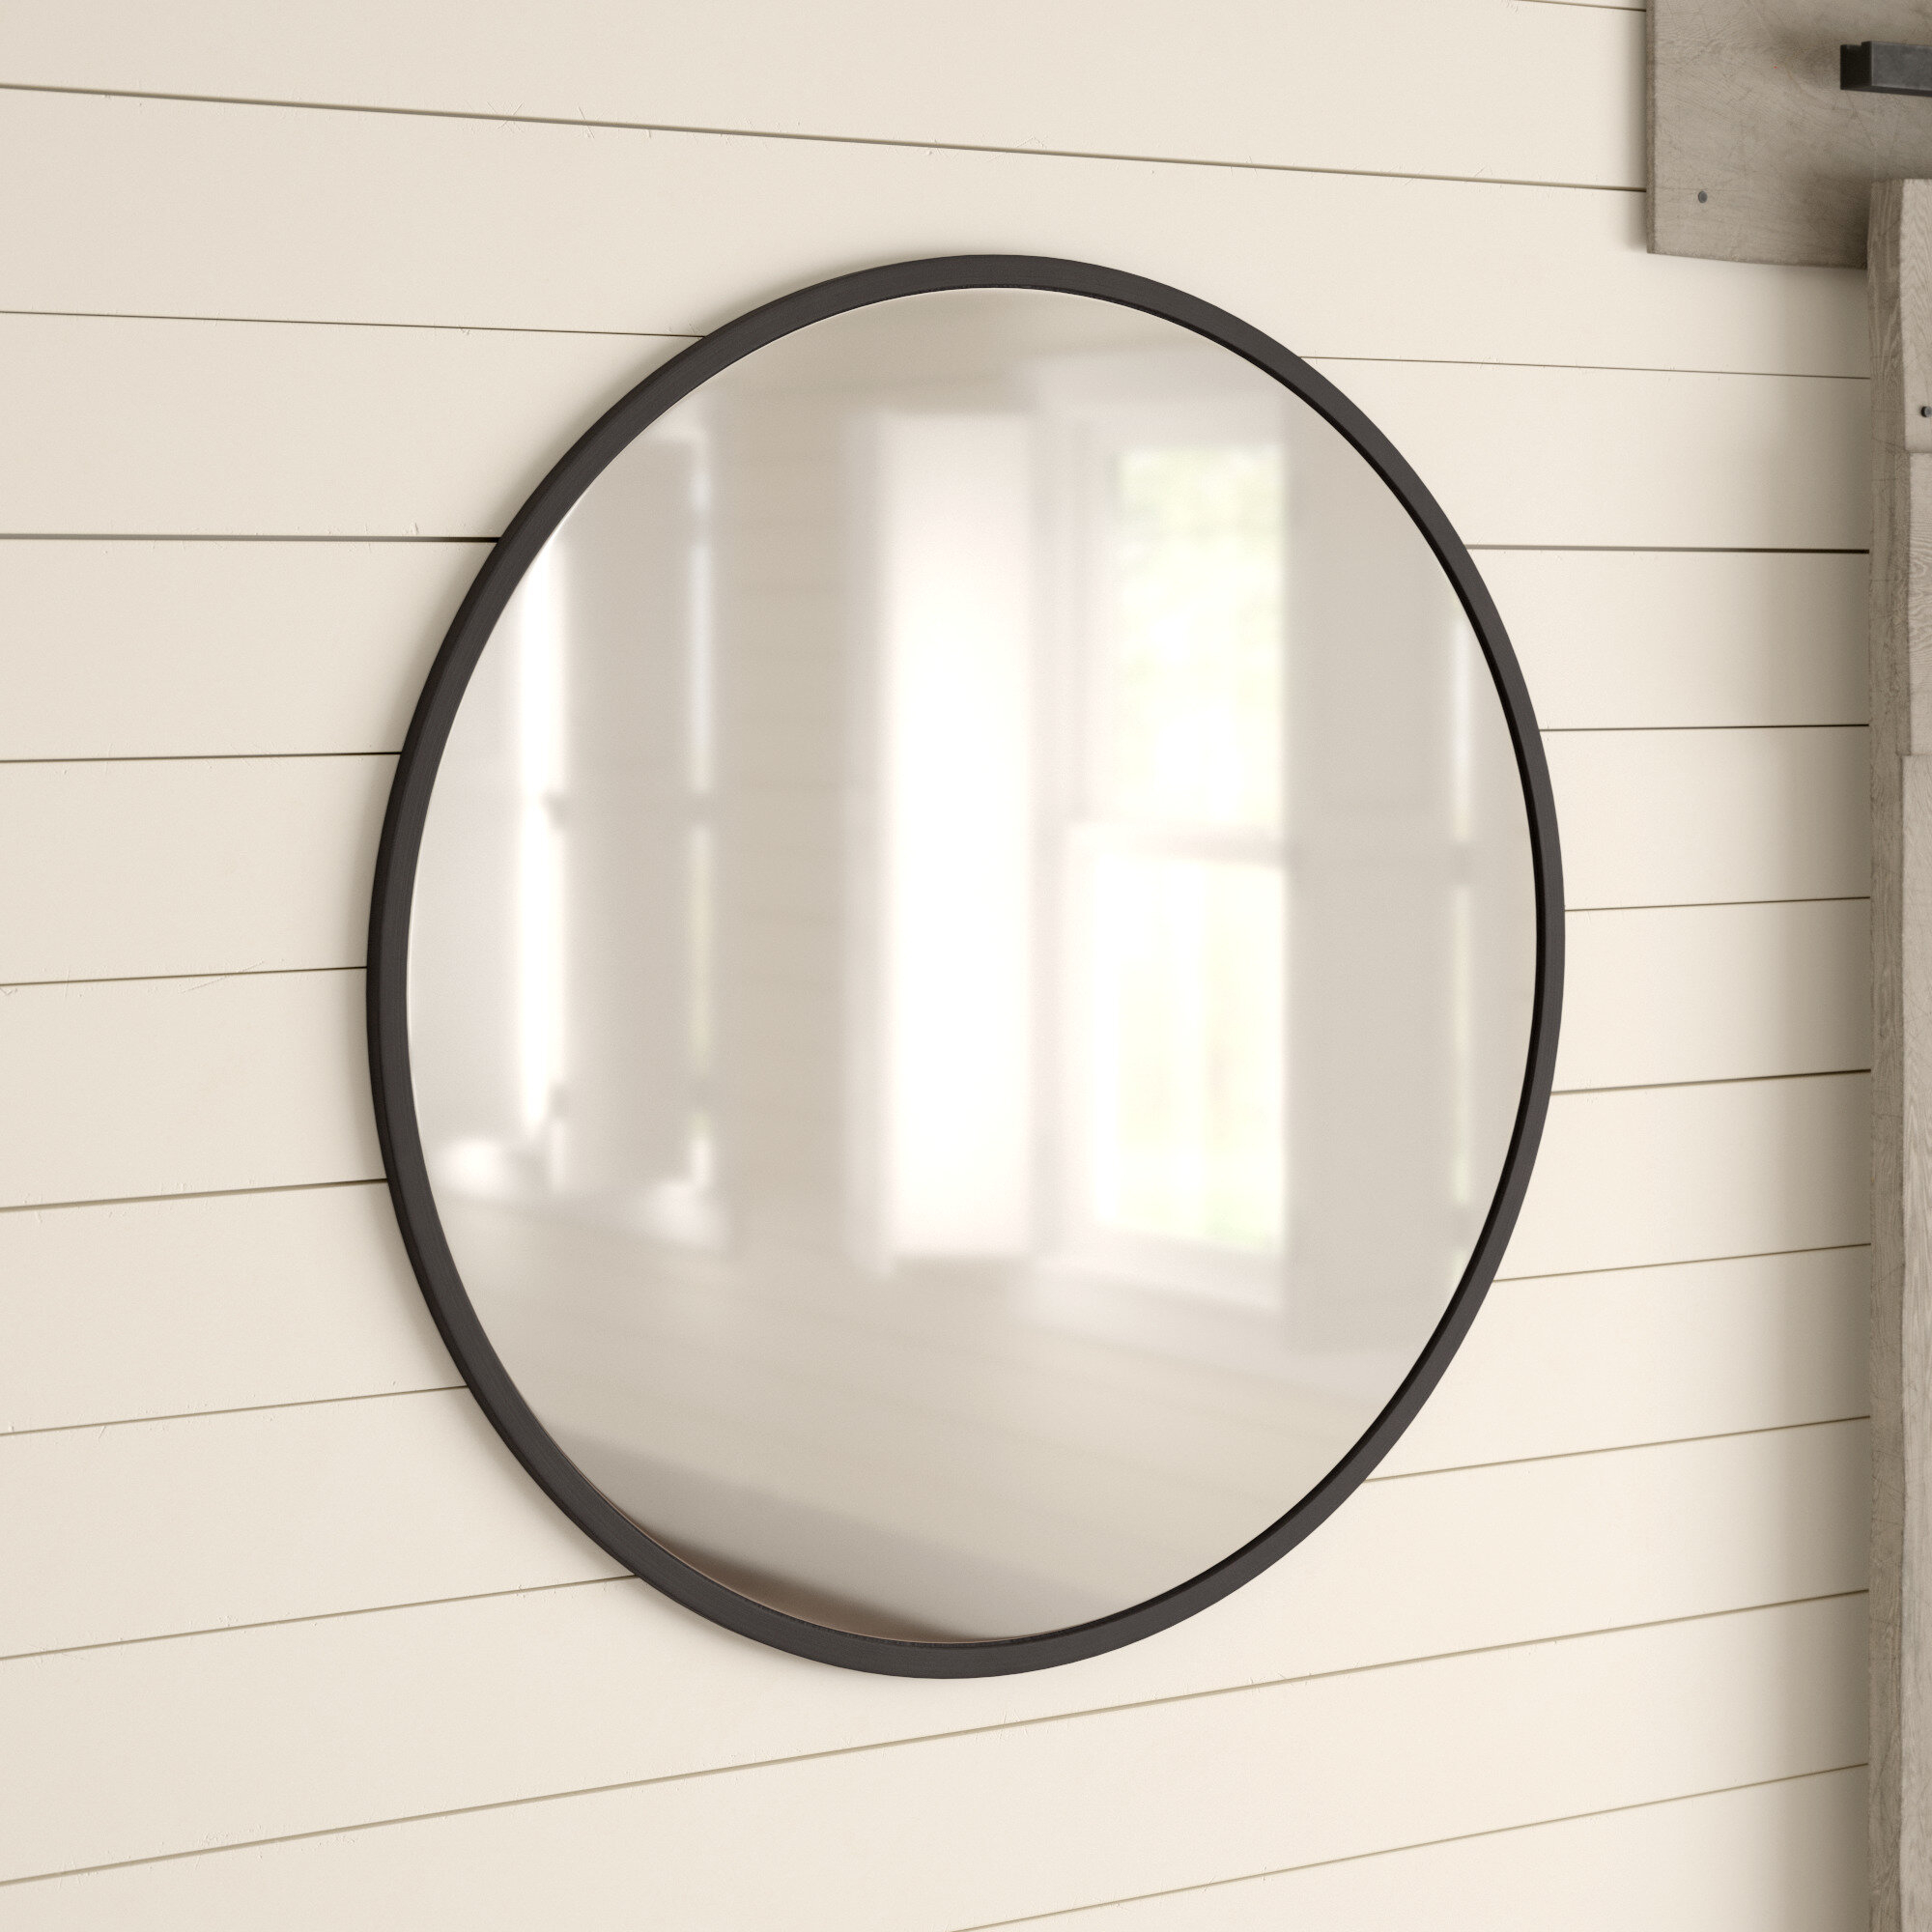 Farmhouse & Rustic Mirrors | Birch Lane Within Astrid Modern & Contemporary Accent Mirrors (View 19 of 20)